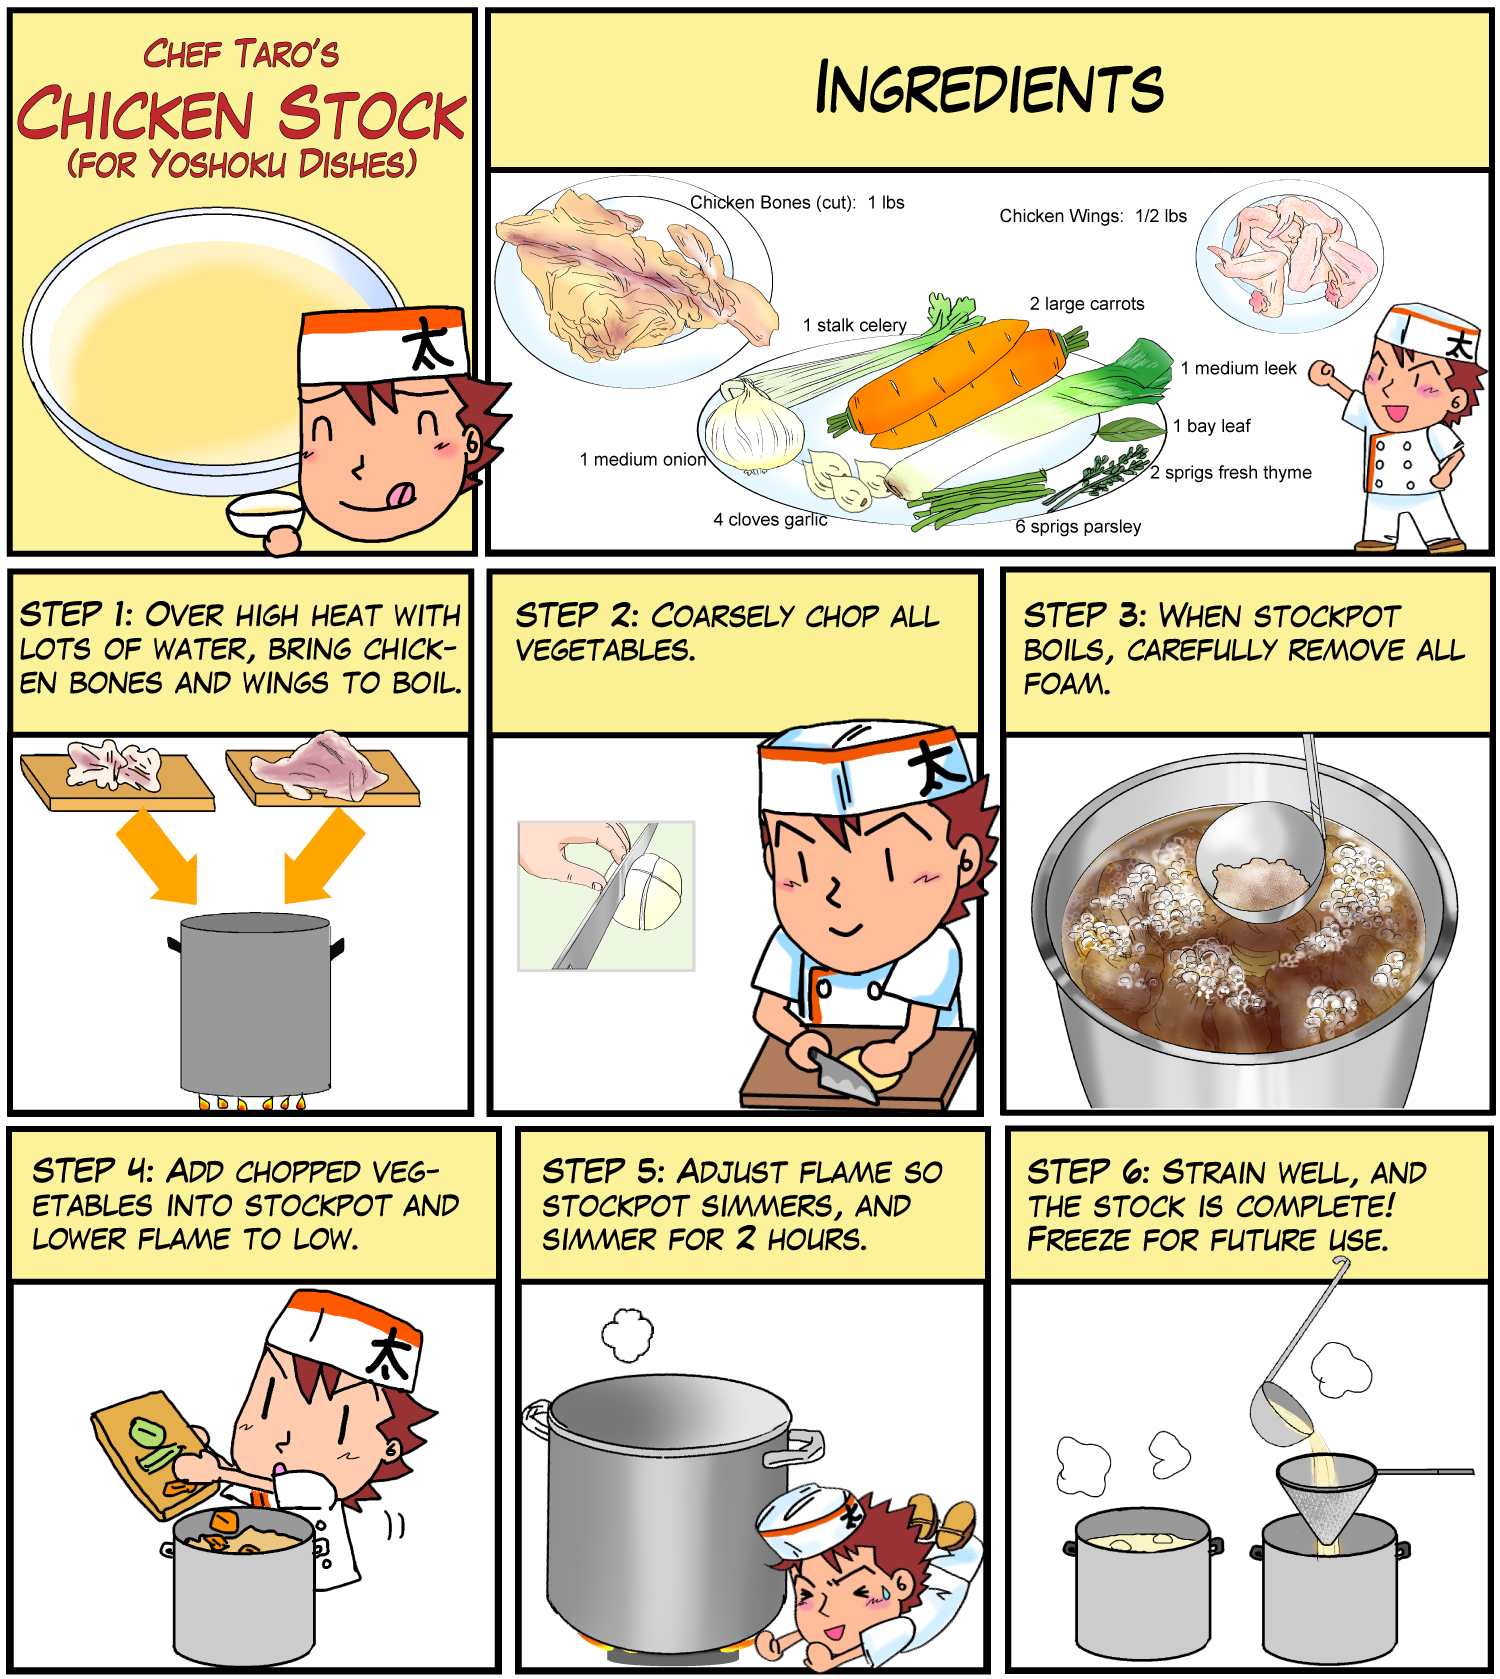 Japanese food recipe. Chicken stock for yoshoku dishes. Chef Taro